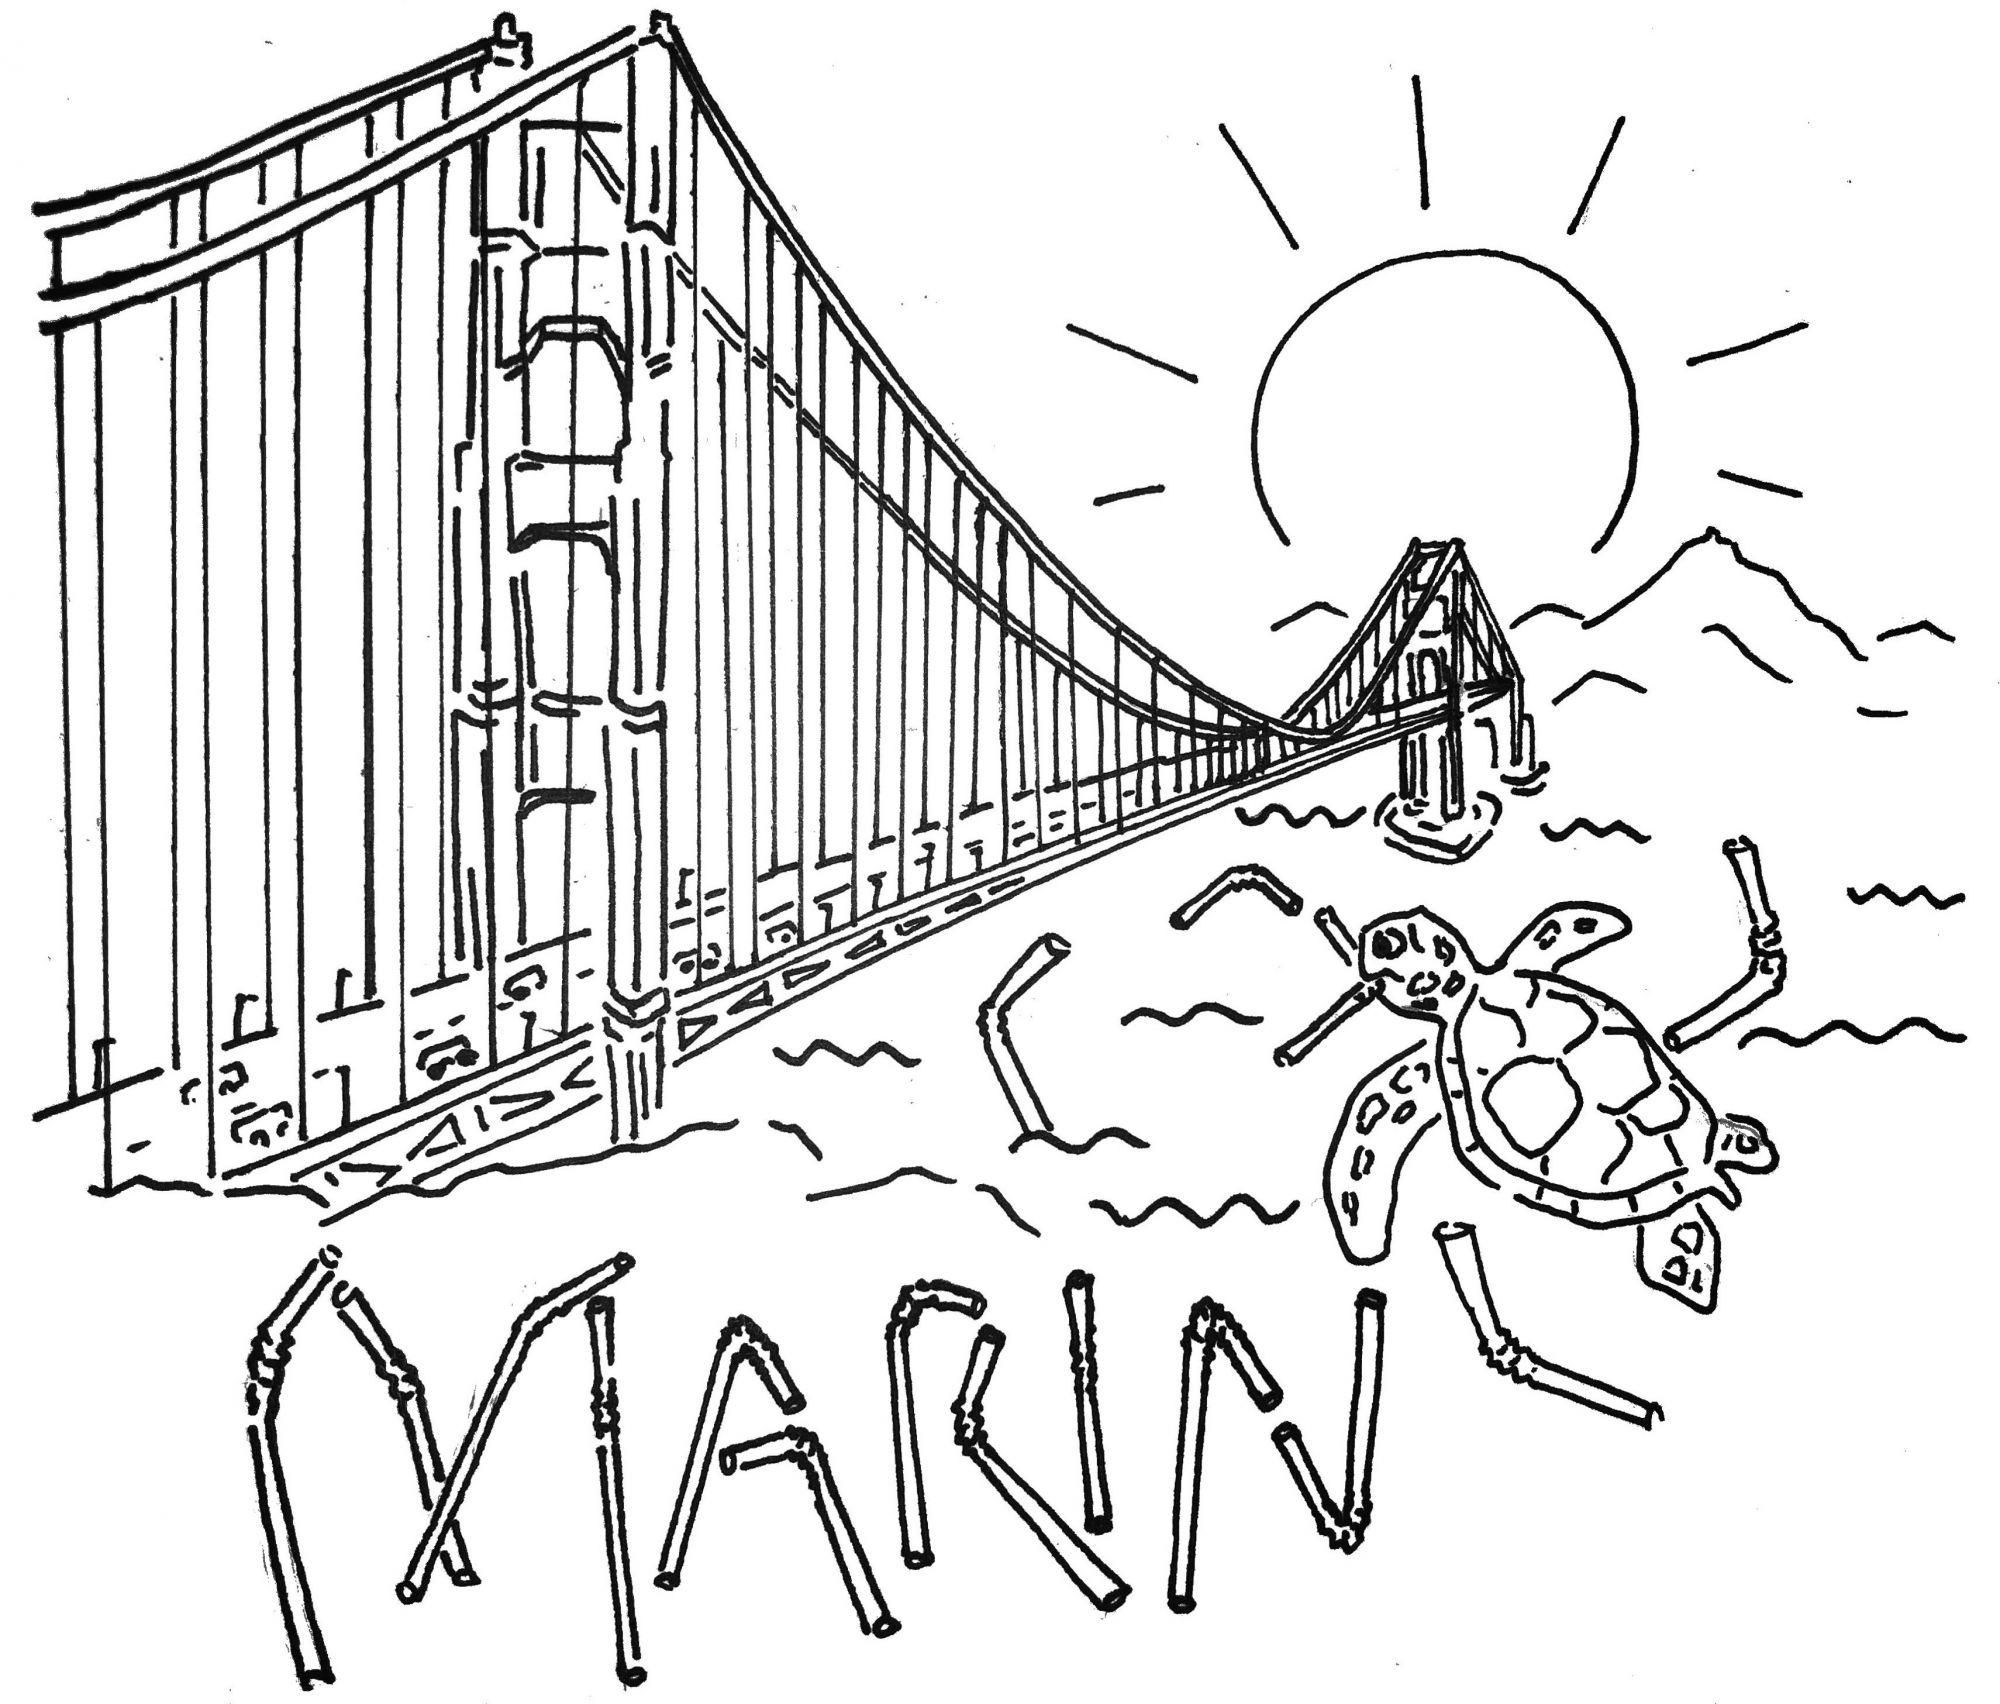 Straws are sucking the life out of Marin